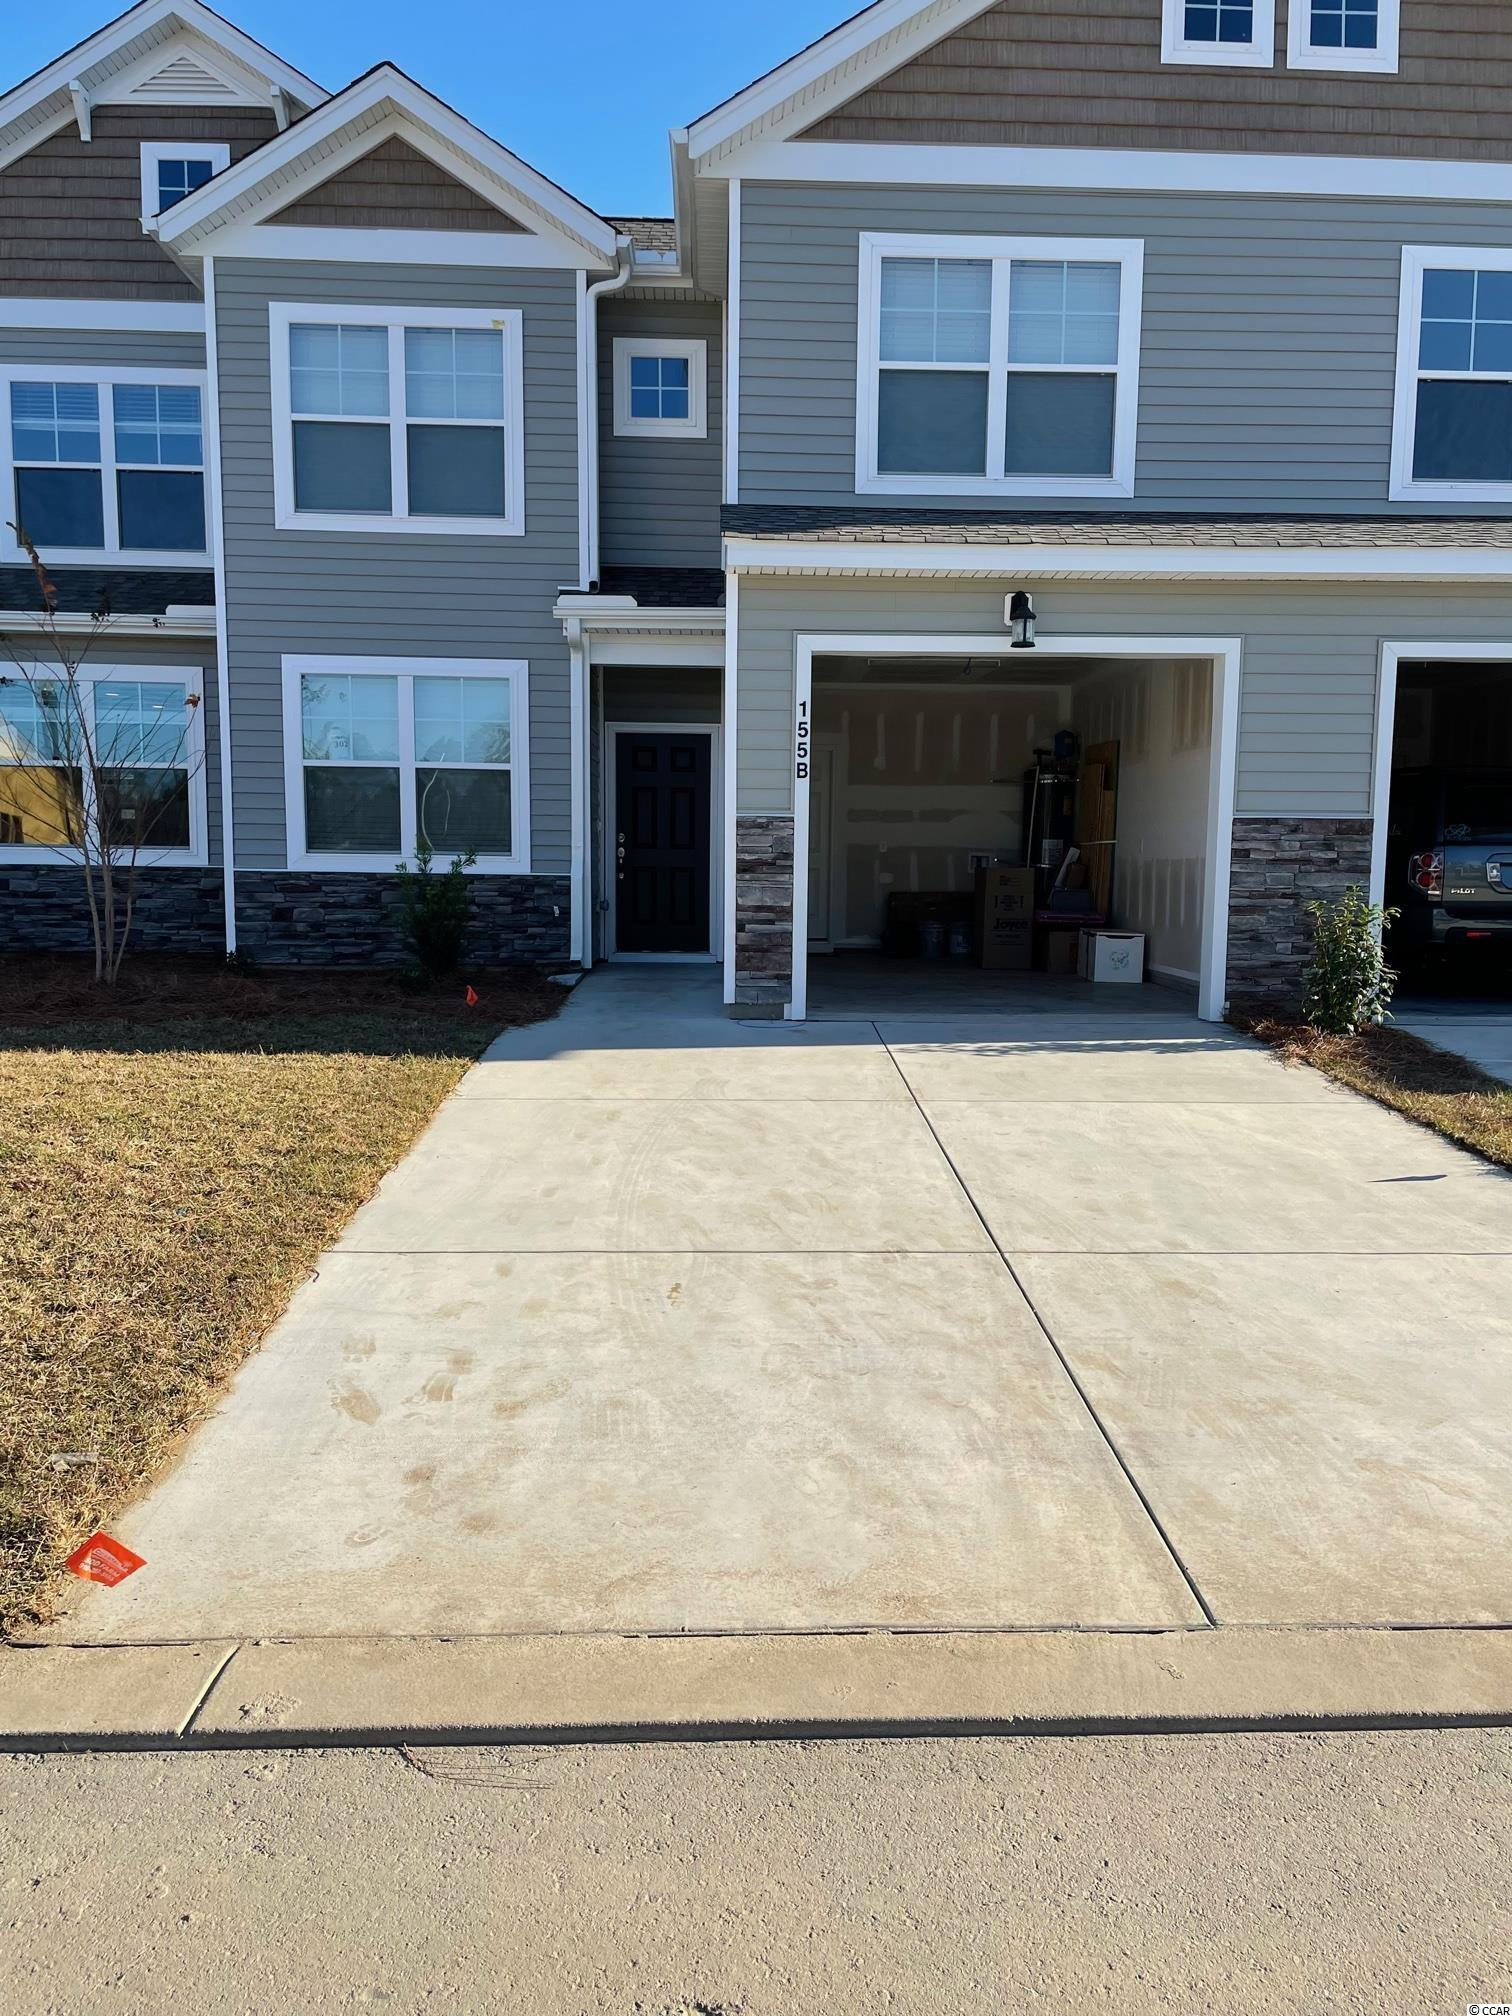 This is what you have been waiting for!!! Experience the ultimate in carefree, low maintenance living at Berwick at Windsor Plantation -a townhome community. Whether you're looking for your first home, relocating to the area, or searching for the ideal second home at the beach, chances are you'll find exactly what you're looking for at Berwick. This home is thoughtfully designed with 3 bedrooms, 2.5 baths, a loft and a 1 car garage. You'll enjoy easy living with a first floor master bedroom, bath, and utility room.  While someone else maintains the exterior of your new home, you can relax in our refreshing community just steps from your front door.  Berwick's convenience continues with an ideal location that provides quick access to all major roadways including Hwy. 544, Hwy. 17, Hwy 31, and Hwy 501. Plus, you'll enjoy nearby dining, shopping, medical facilities, golf courses and entertainment along with being just a short drive from Broadway at the Beach, the Tanger Outlets, the Myrtle Beach Airport, Barefoot Landing, Murrells Inlet and 60 miles of celebrated coastline and Myrtle Beach's Golden Mile. . *Photos are of model home and do not reflect color selections and options of actual unit for sale.*